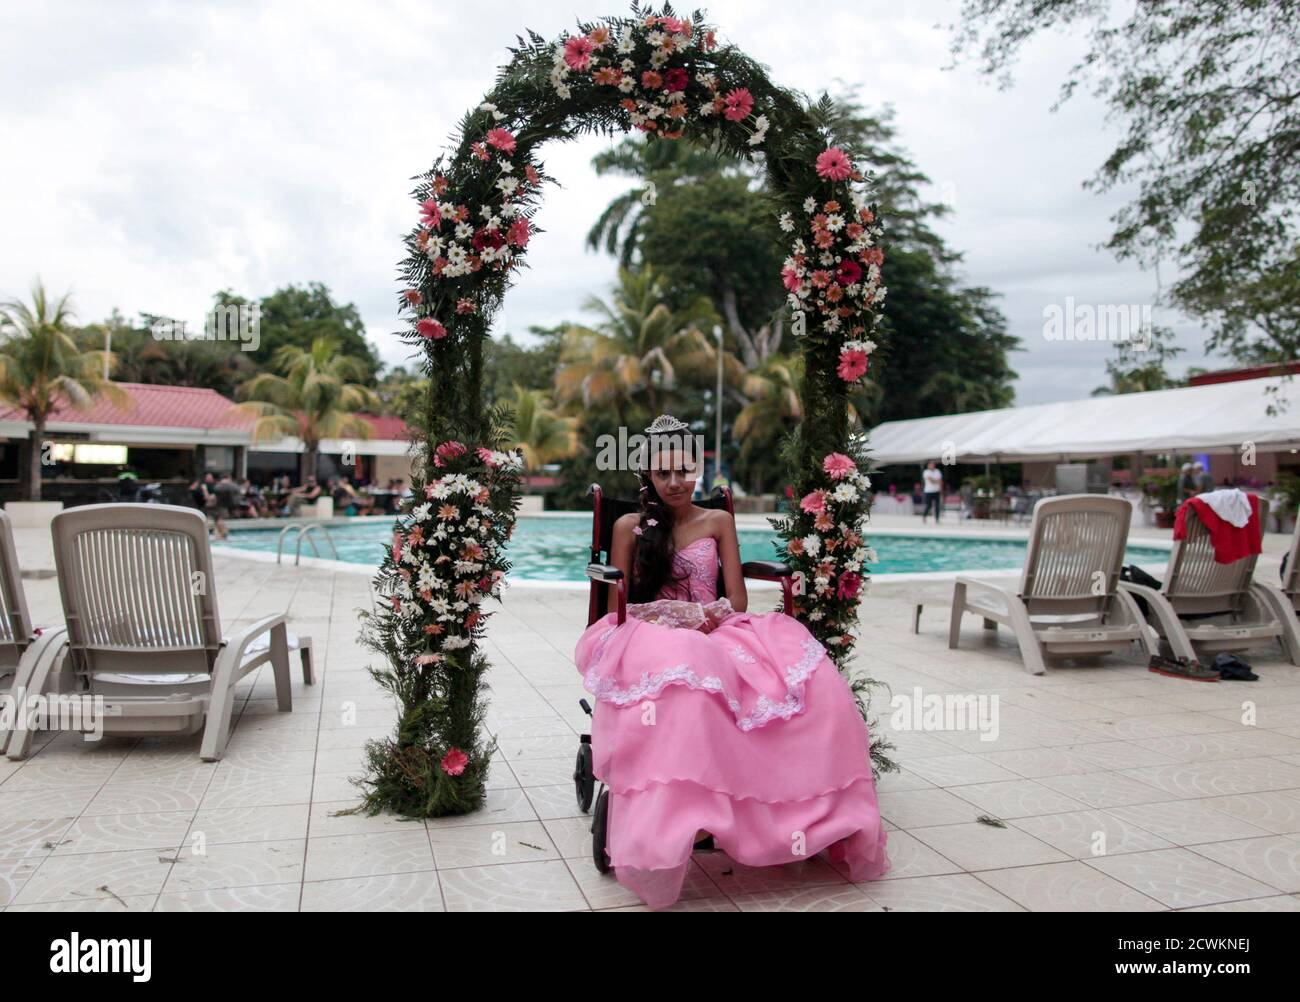 """A cancer patient poses for a photo during her """"Quinceanera"""" (15th birthday) party at a hotel in Managua September 20, 2014. Quinceaneras are a traditional celebration for girls turning 15. The Nicaragua's Association of Mother and Father of Children with Leukemia and Cancer (MAPANICA) organizes quinceaneras for cancer patients annually, and there were 44 celebrants in 2014. Picture taken September 20, 2014. REUTERS/Oswaldo Rivas (NICARAGUA - Tags: HEALTH SOCIETY TPX IMAGES OF THE DAY) Stock Photo"""